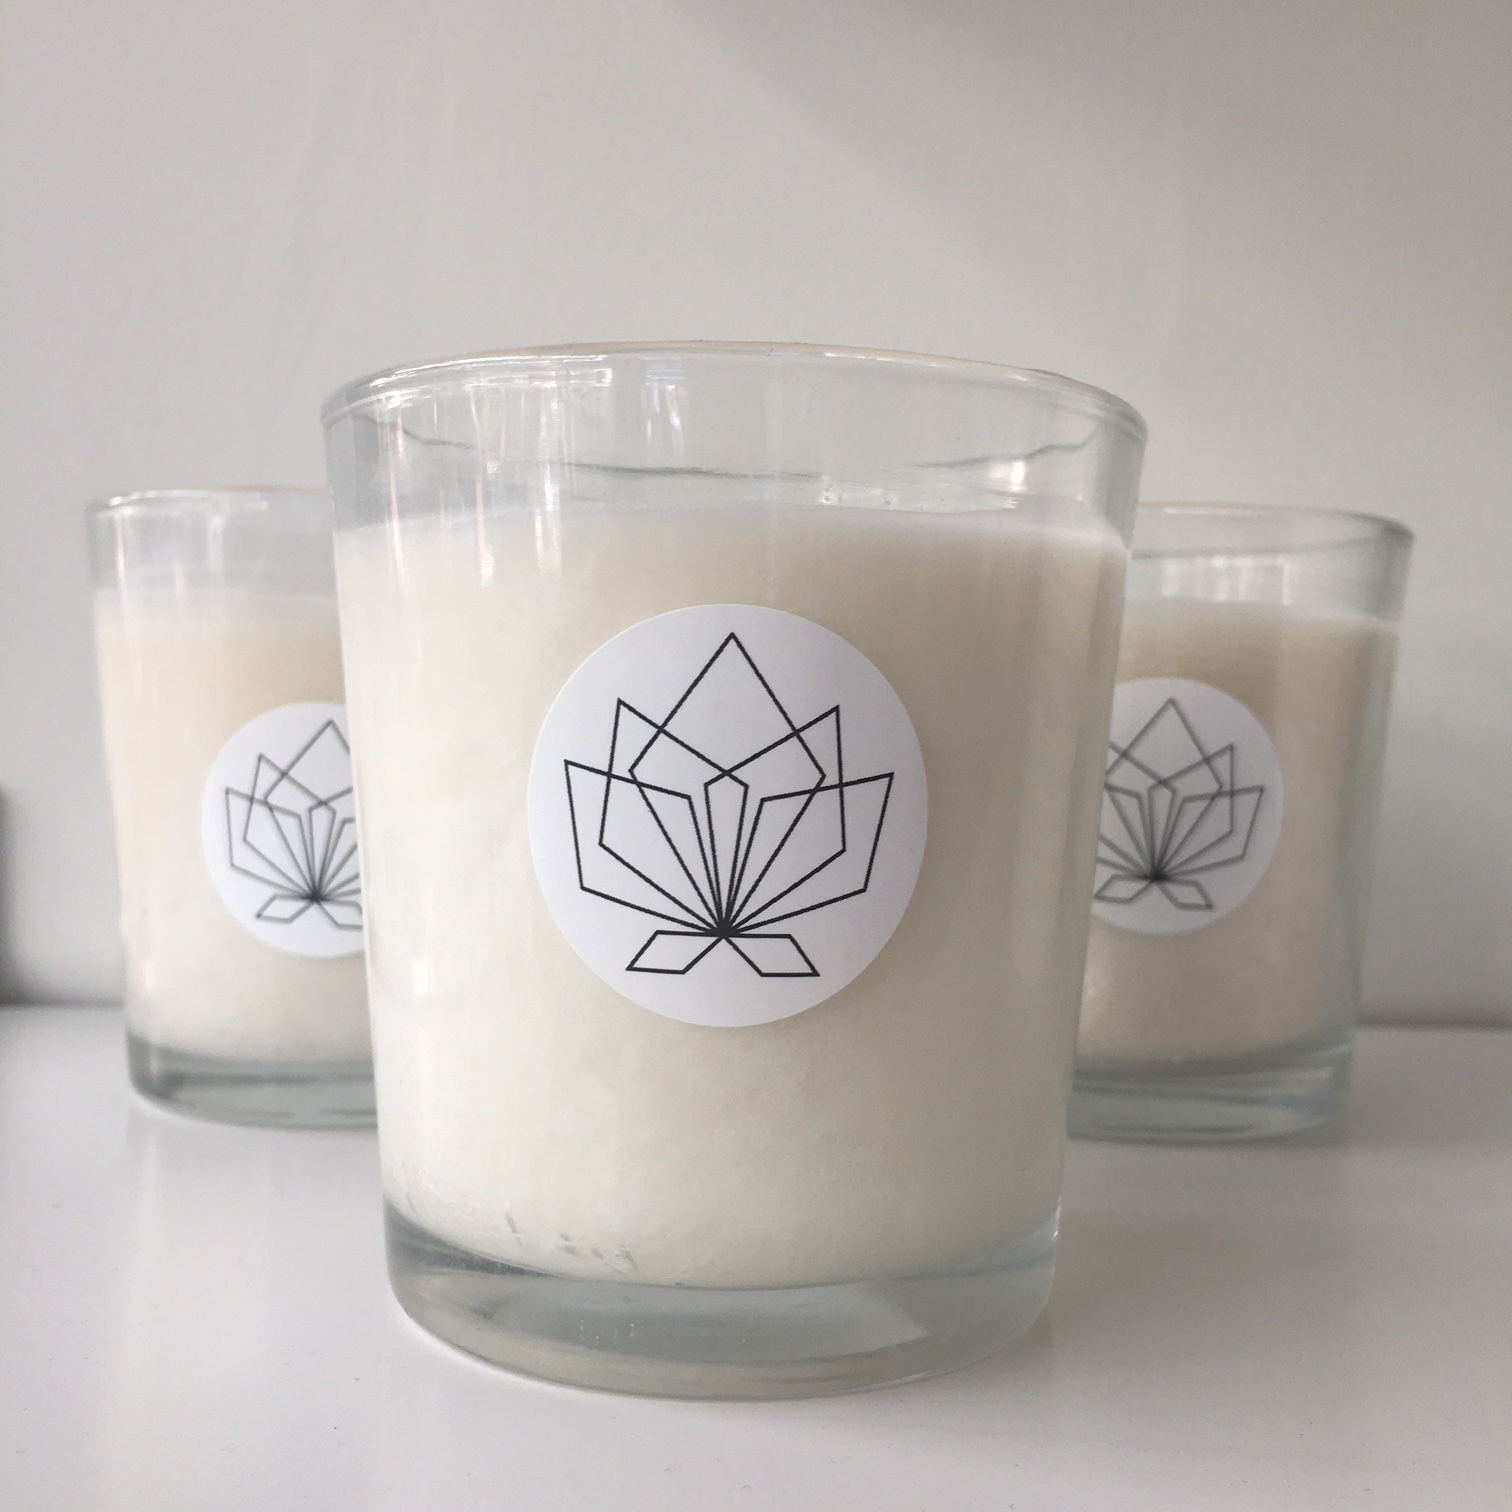 NOW Yoga candle